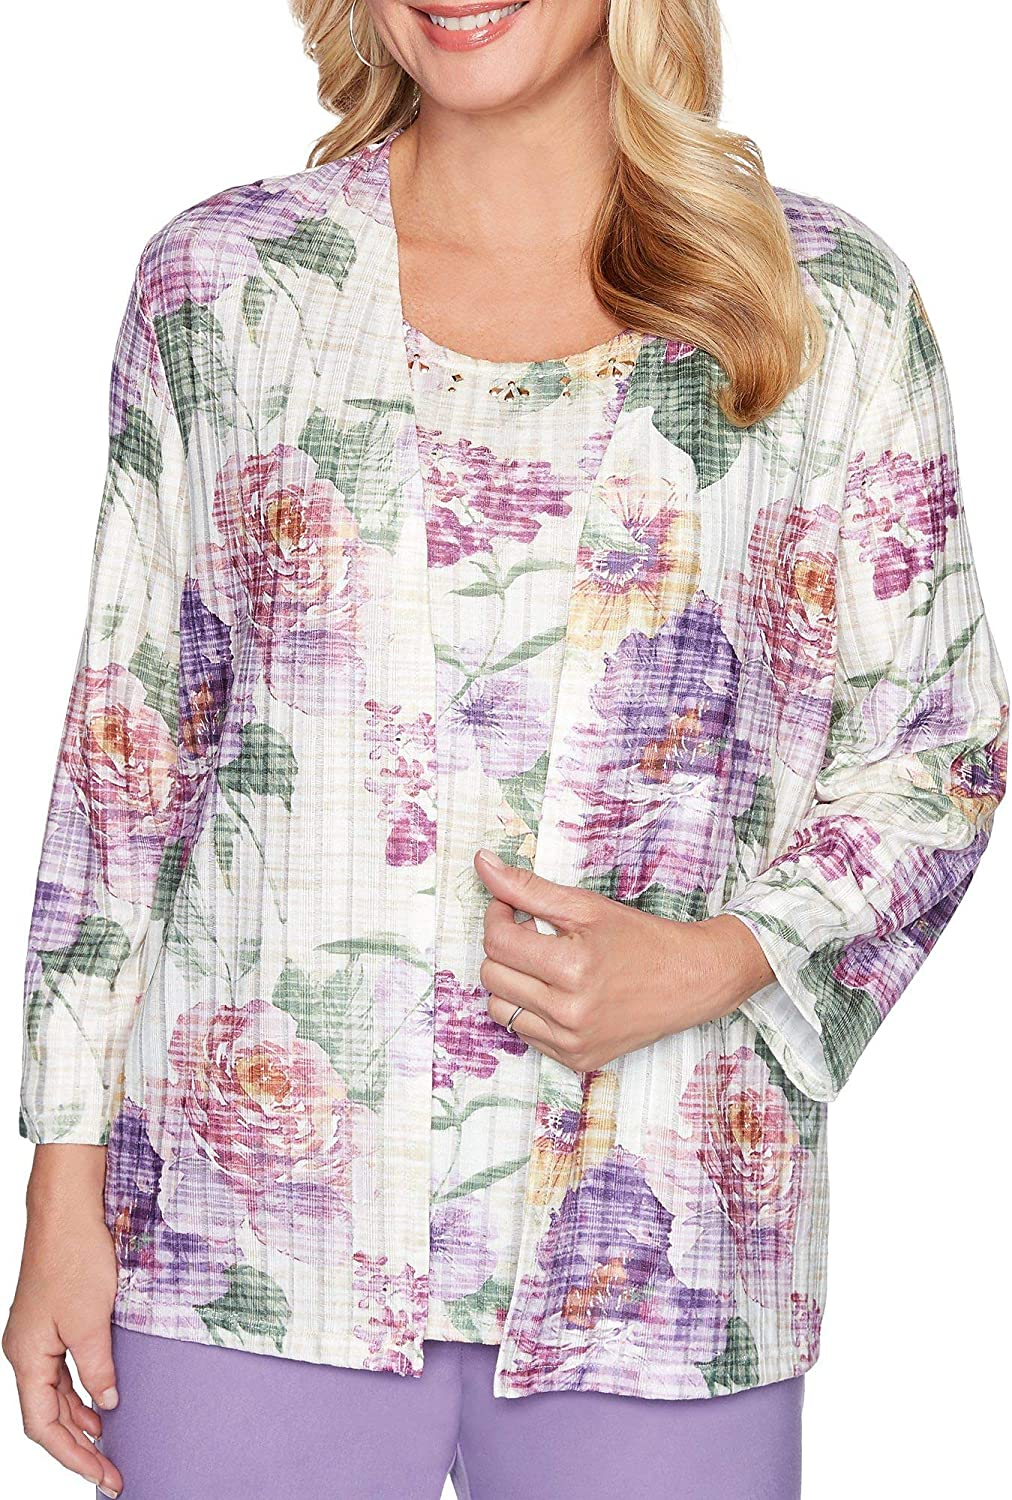 Alfred Dunner Womens Garden Party Floral 2Fer 3//4 Sleeve Woven Top